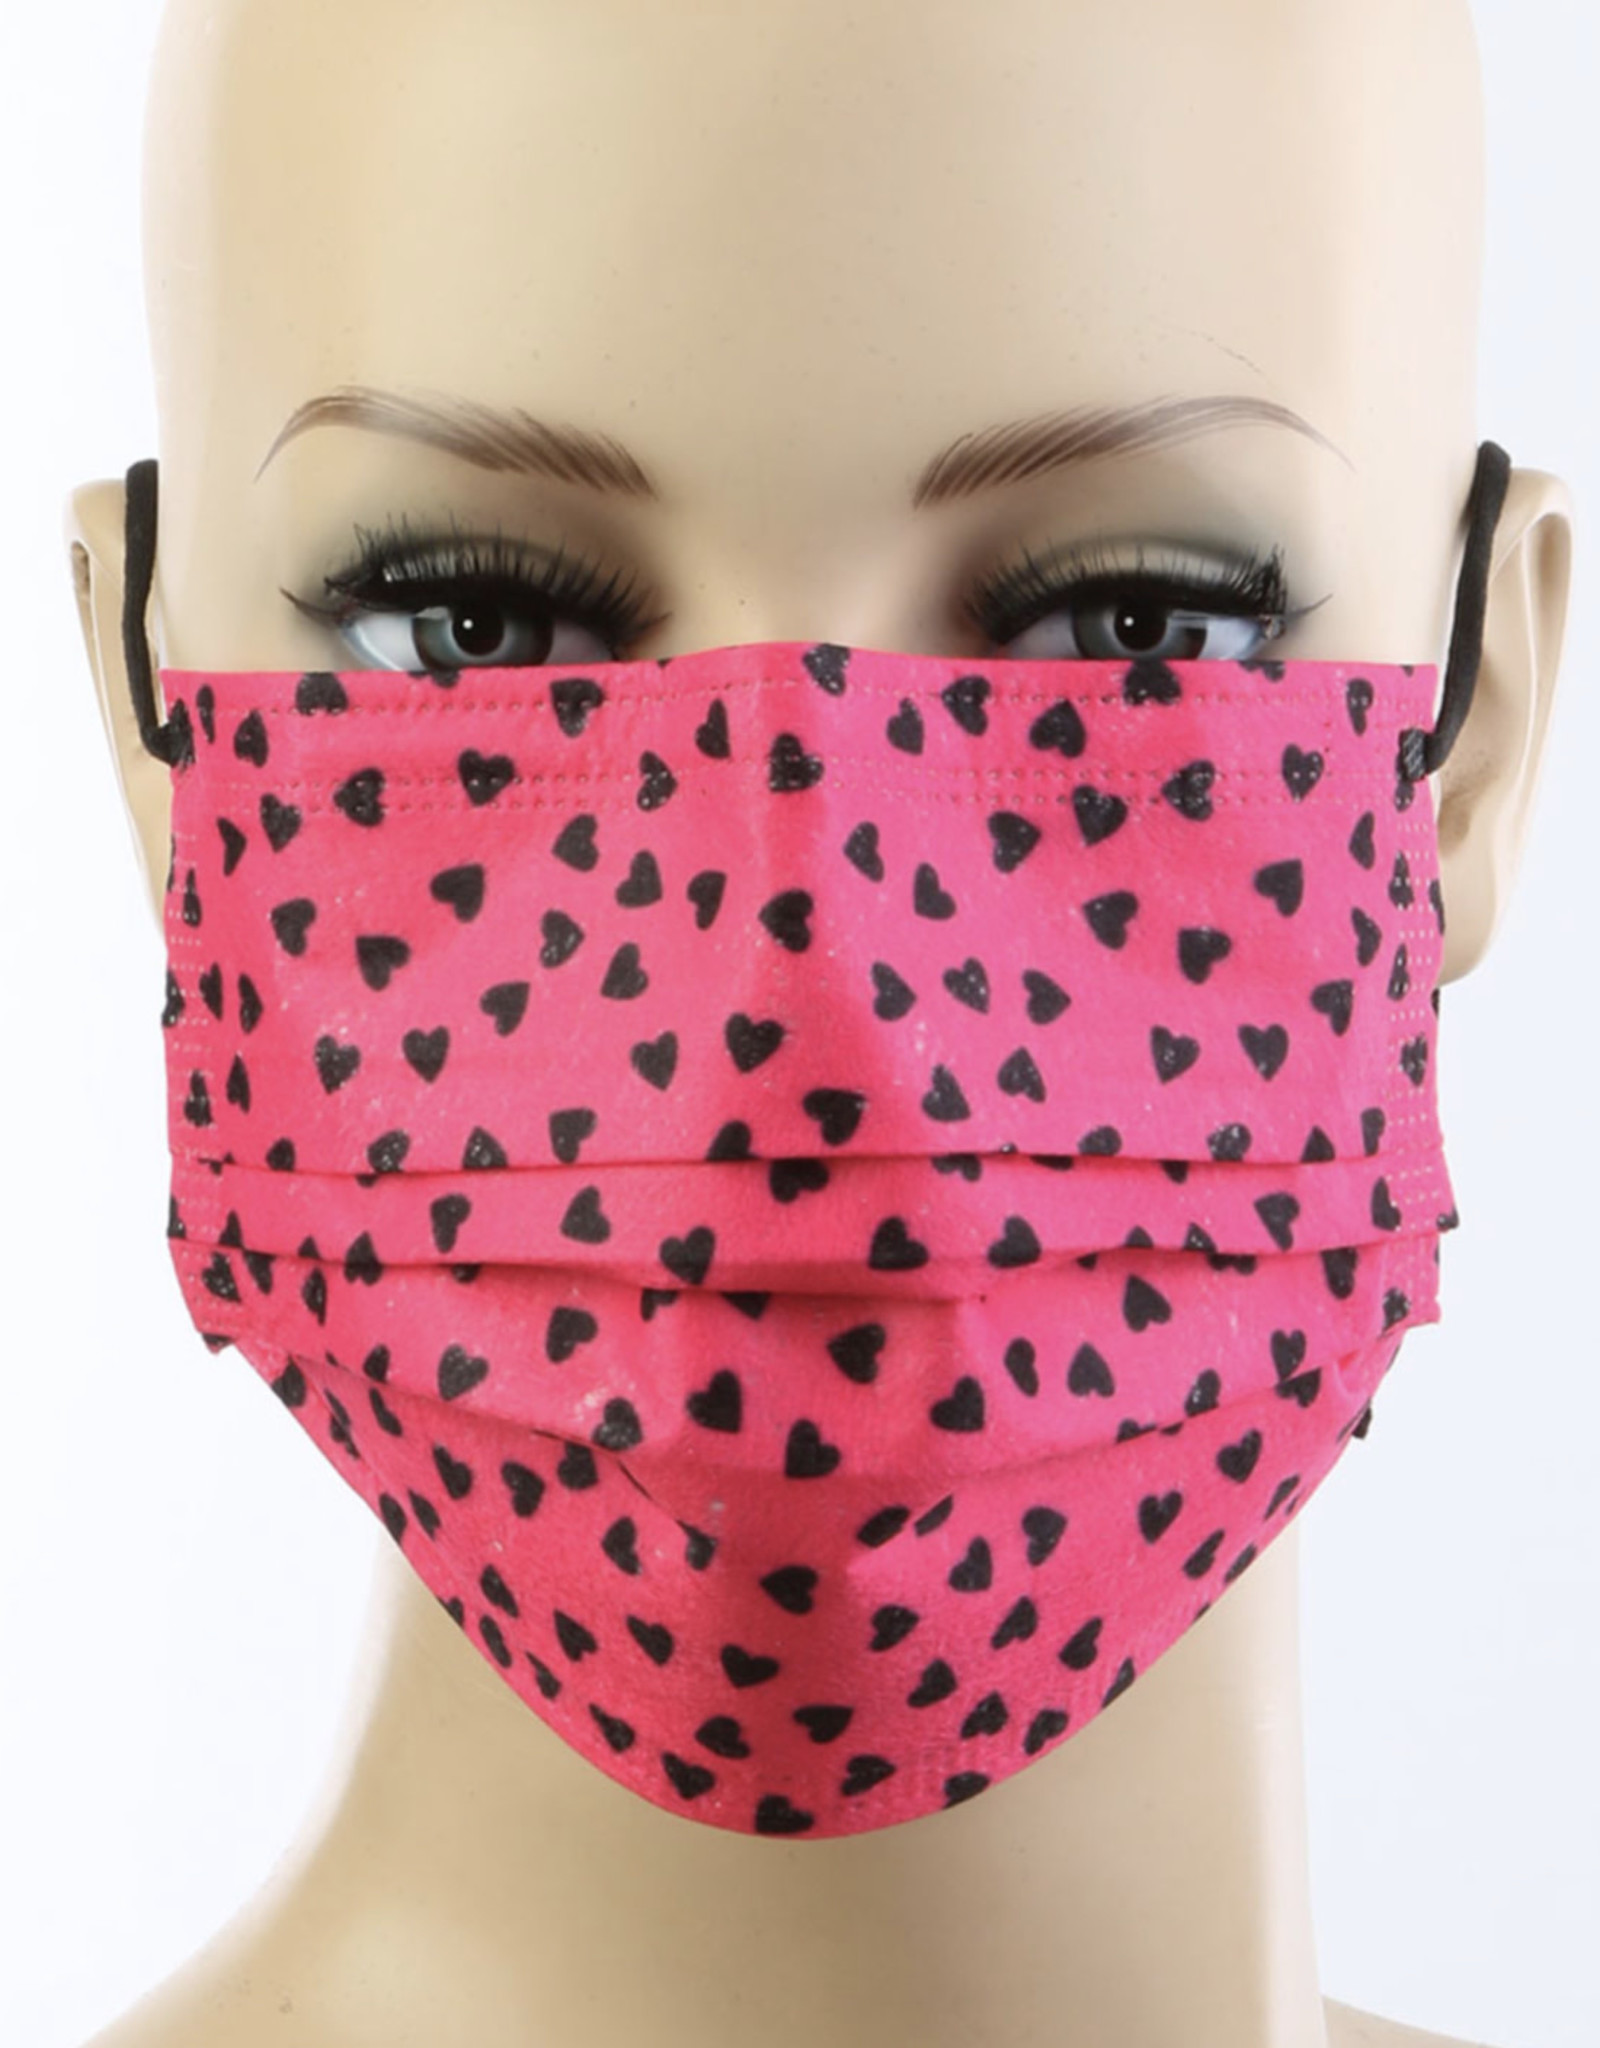 FACE MASK 50 PACK DISPOSABLE CORAL HEARTS 3 LAYER